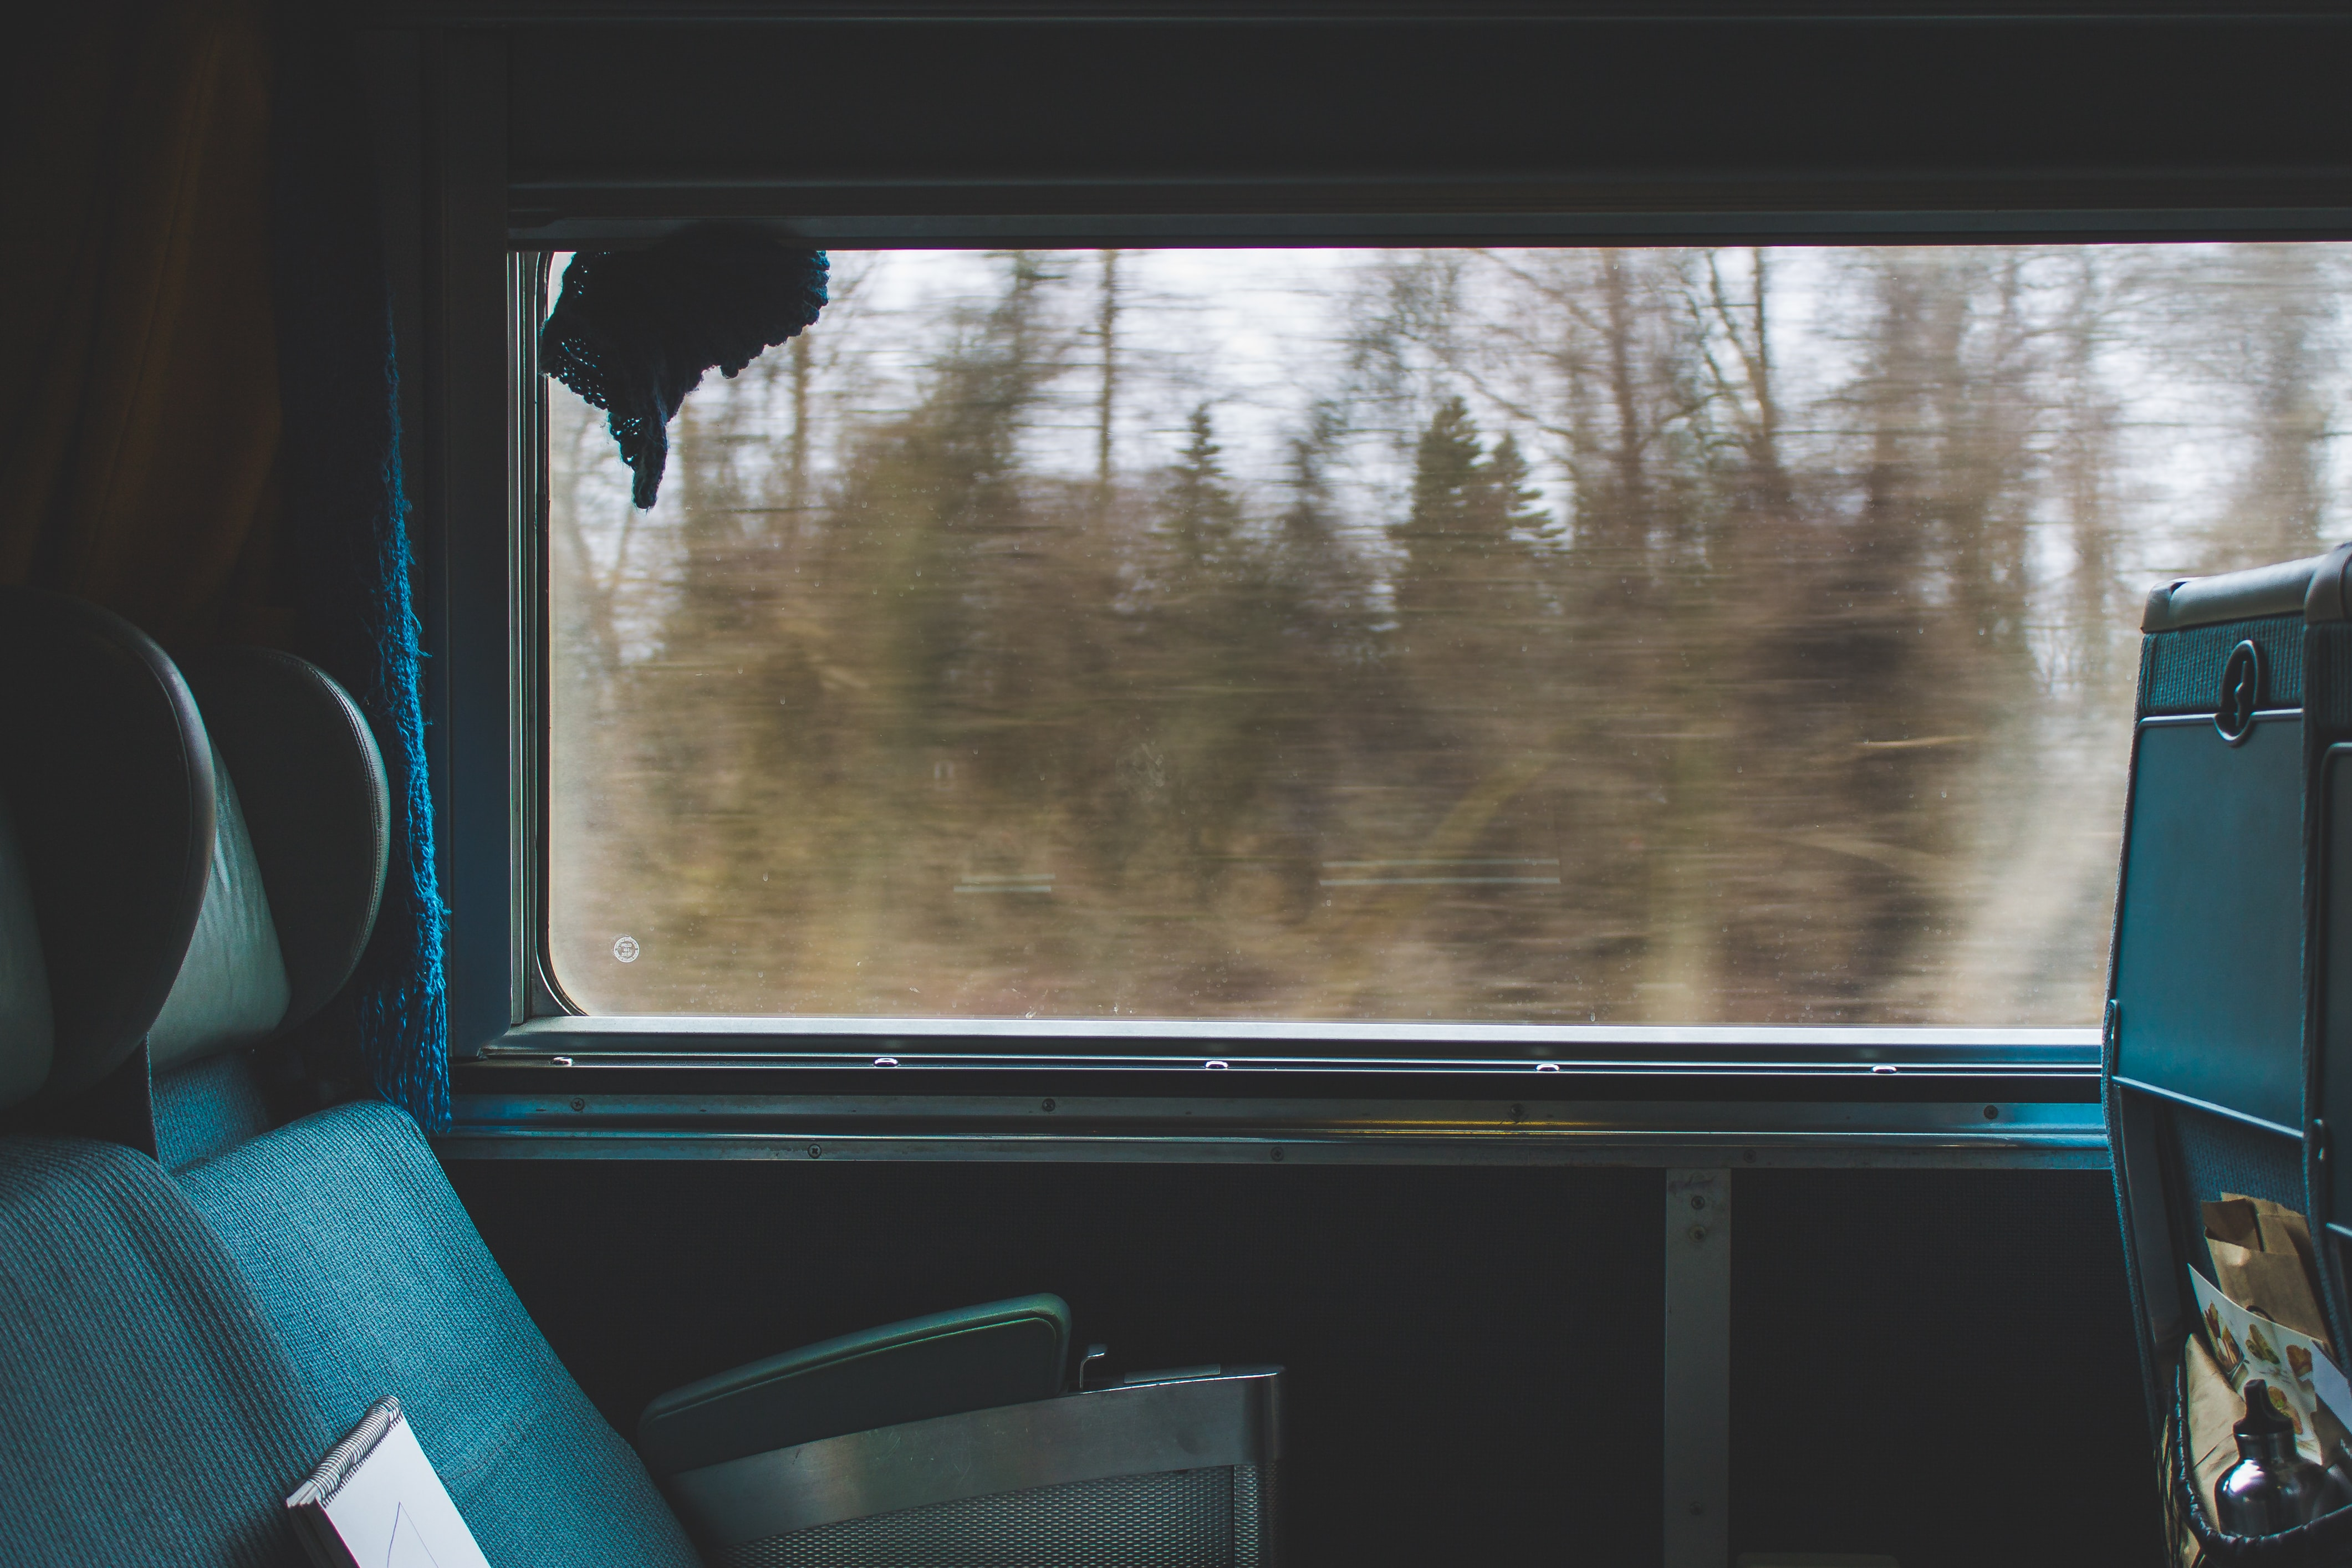 The interior of a moving train with empty seats next to a window